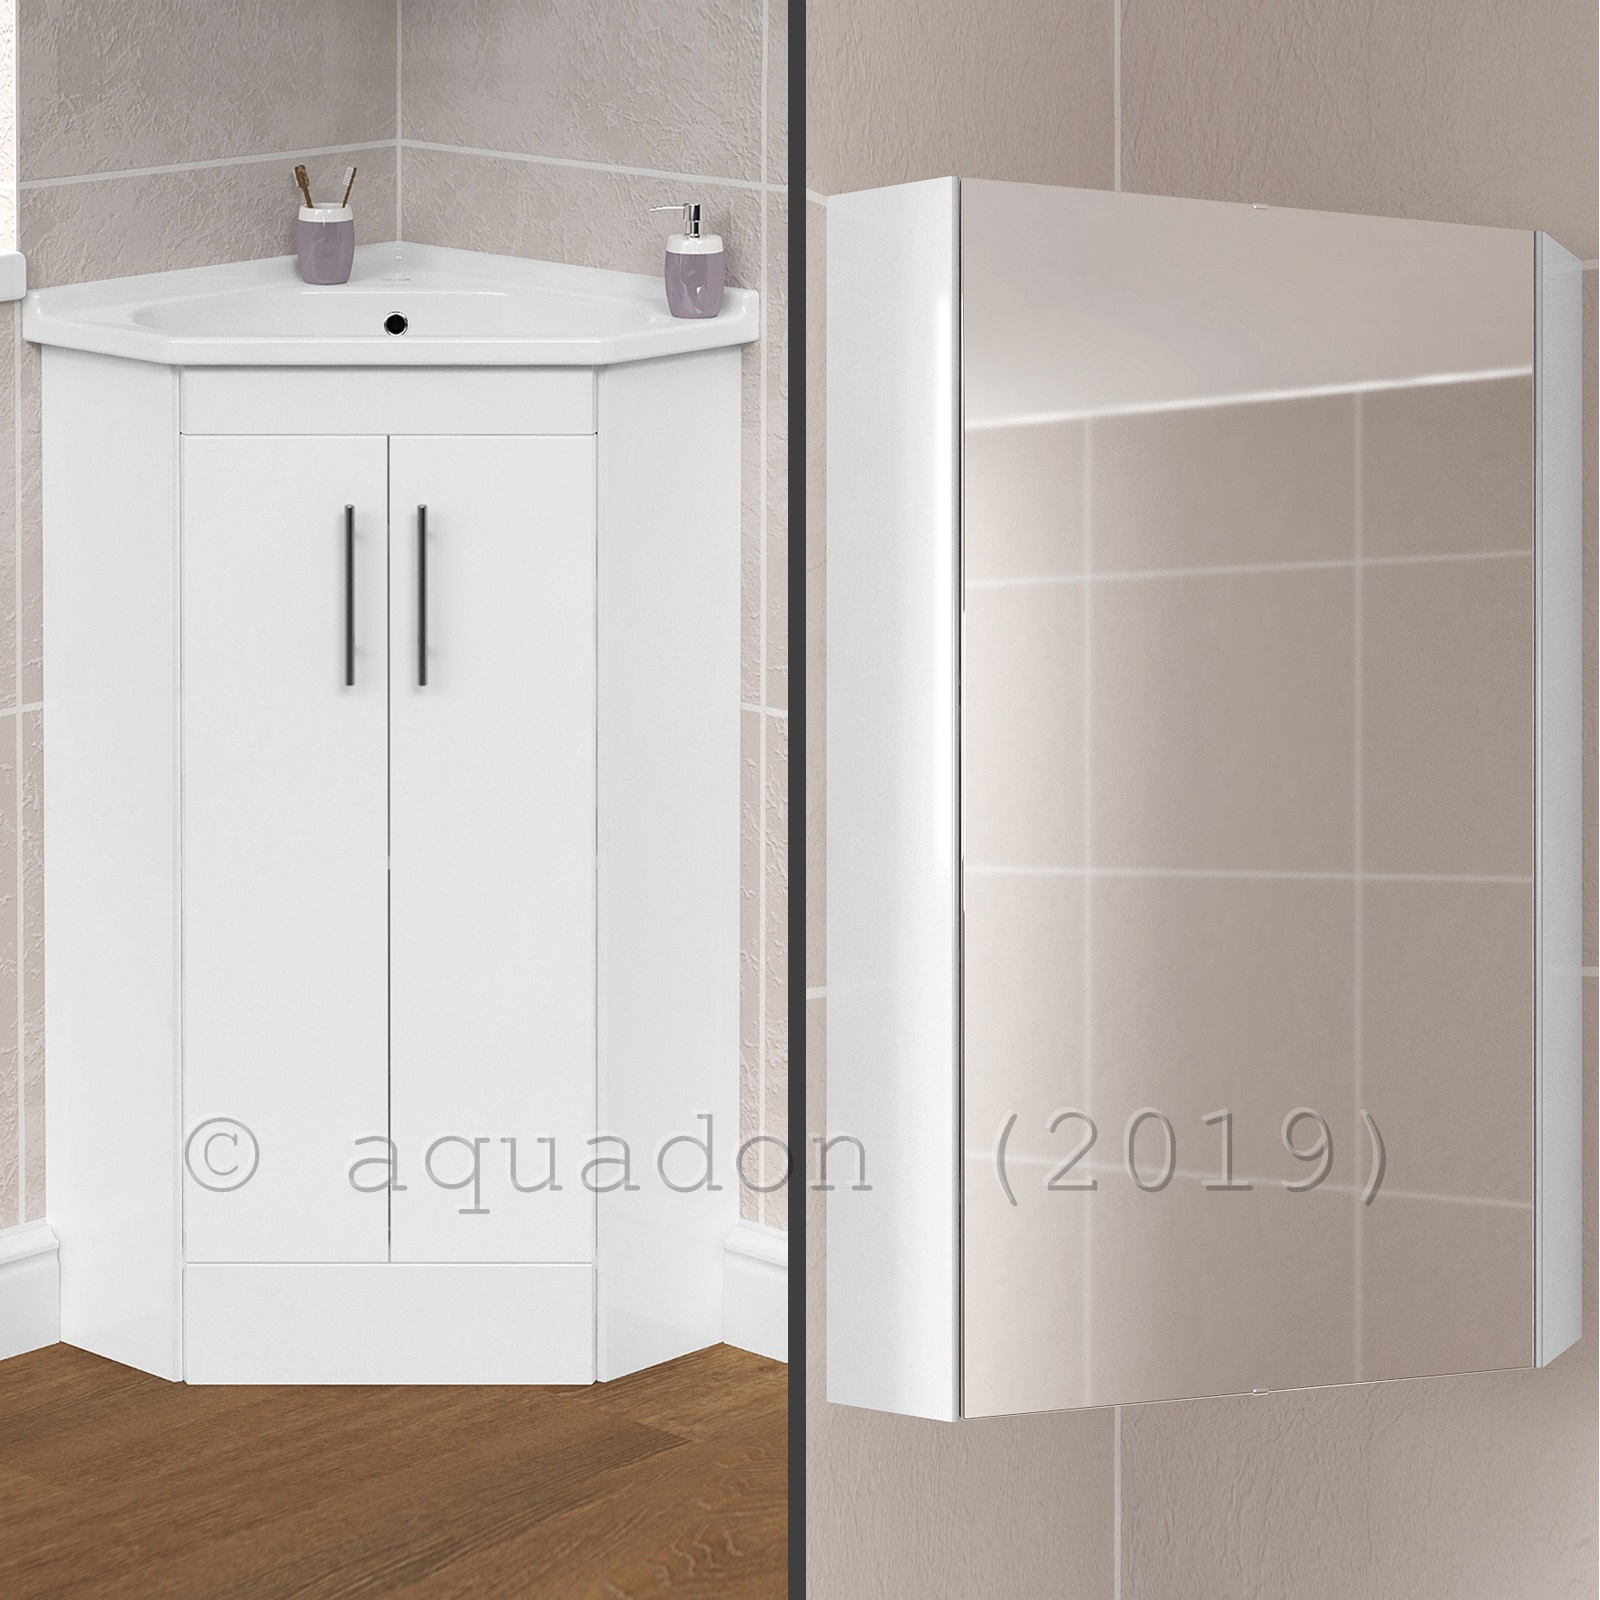 Bathroom Cloakroom 2 Door Corner Vanity Storage Basin Sink Taps Mirror Cabinet Ebay